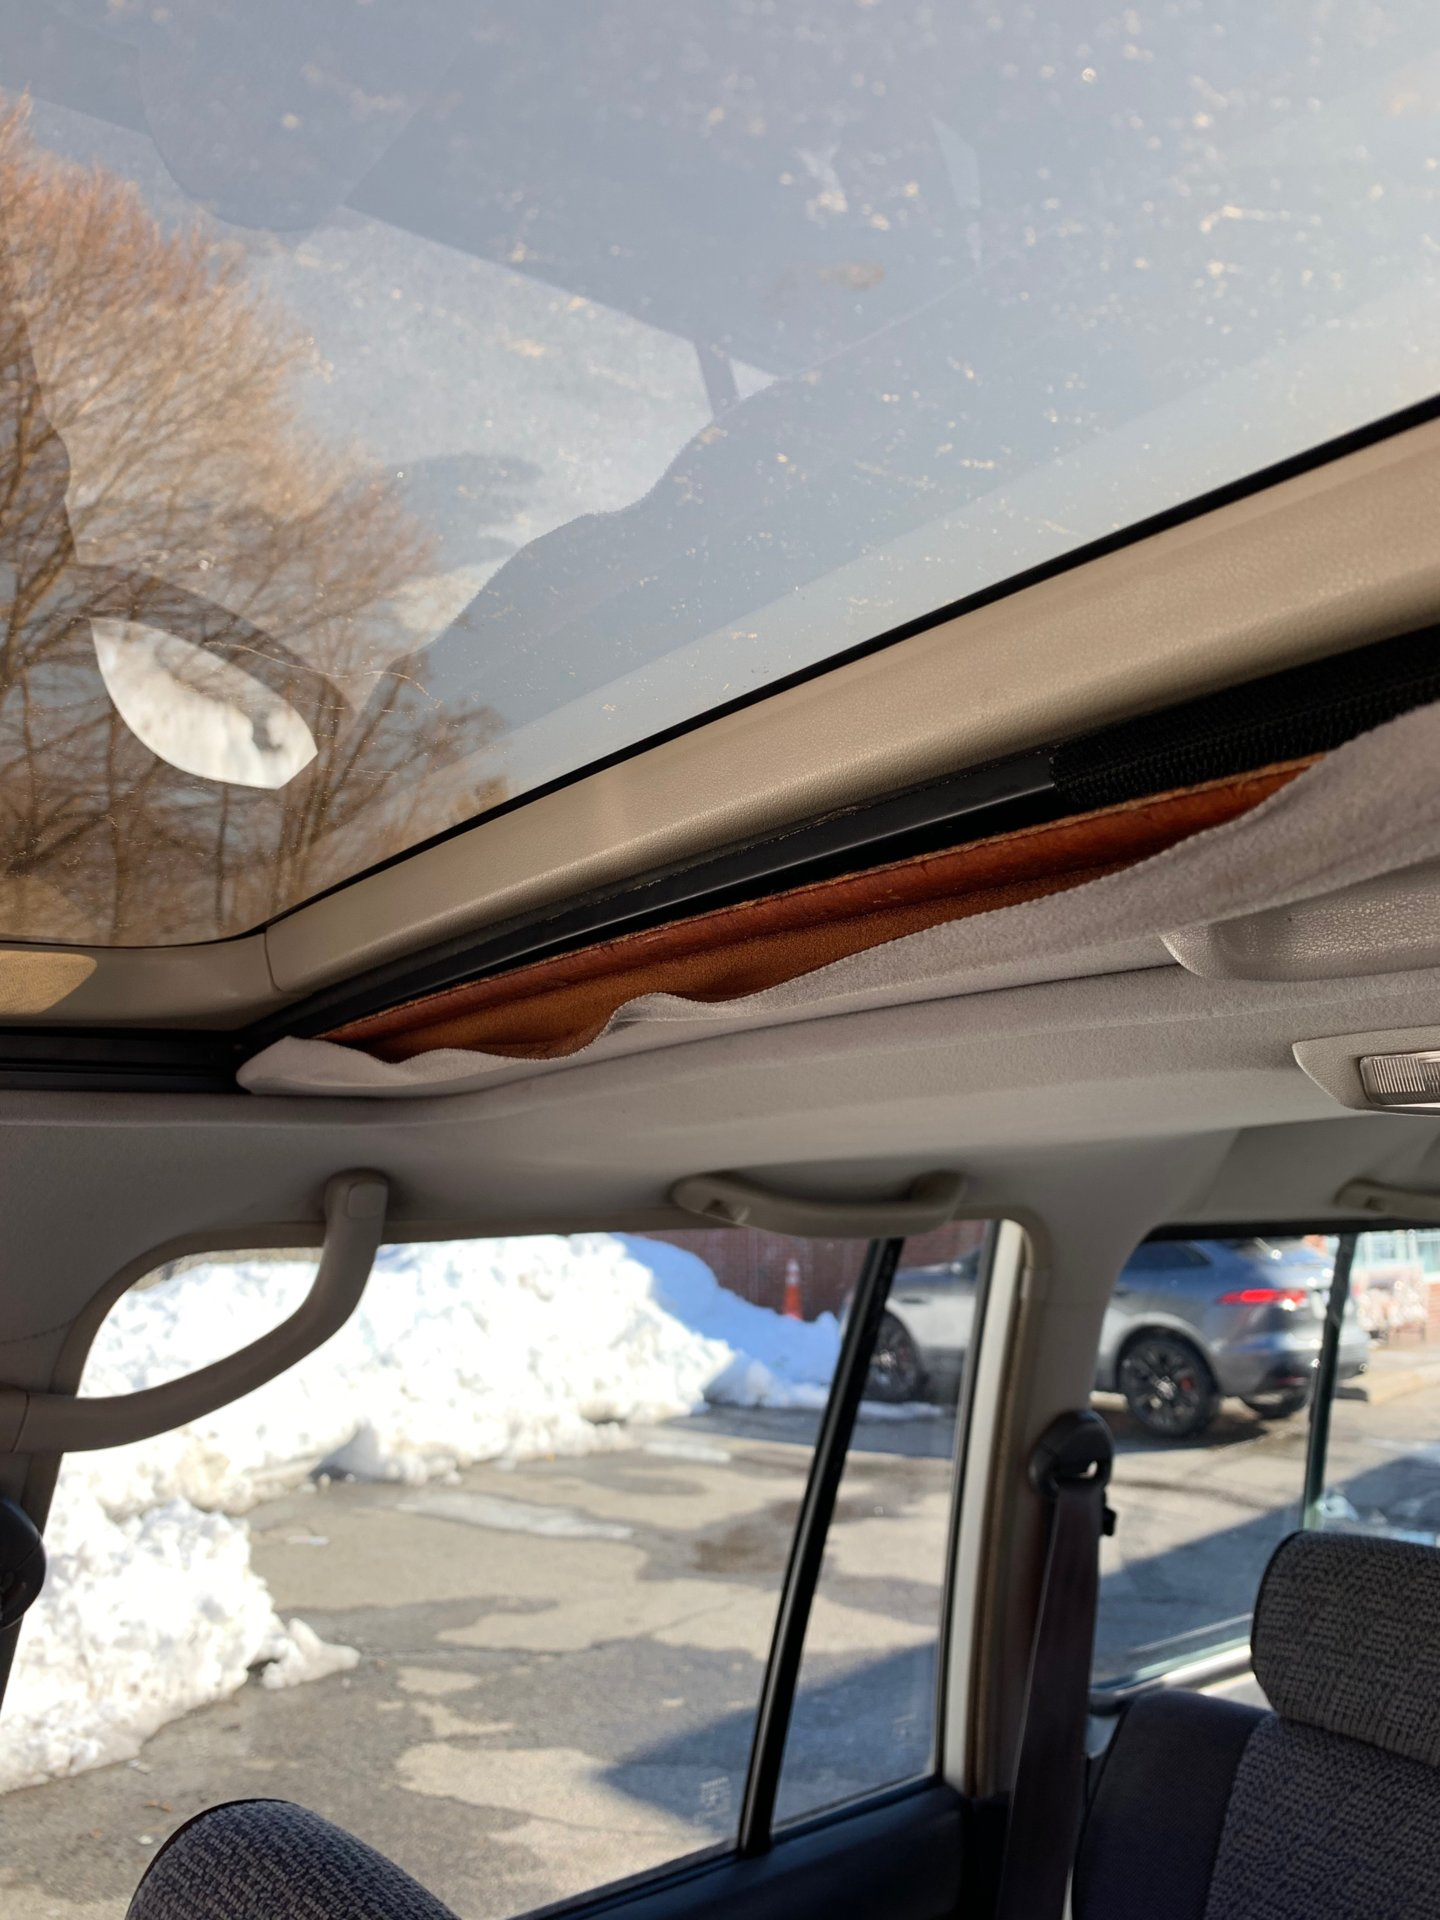 Best way to fix some drooping / peeling sunroof cloth? | IH8MUD Forum